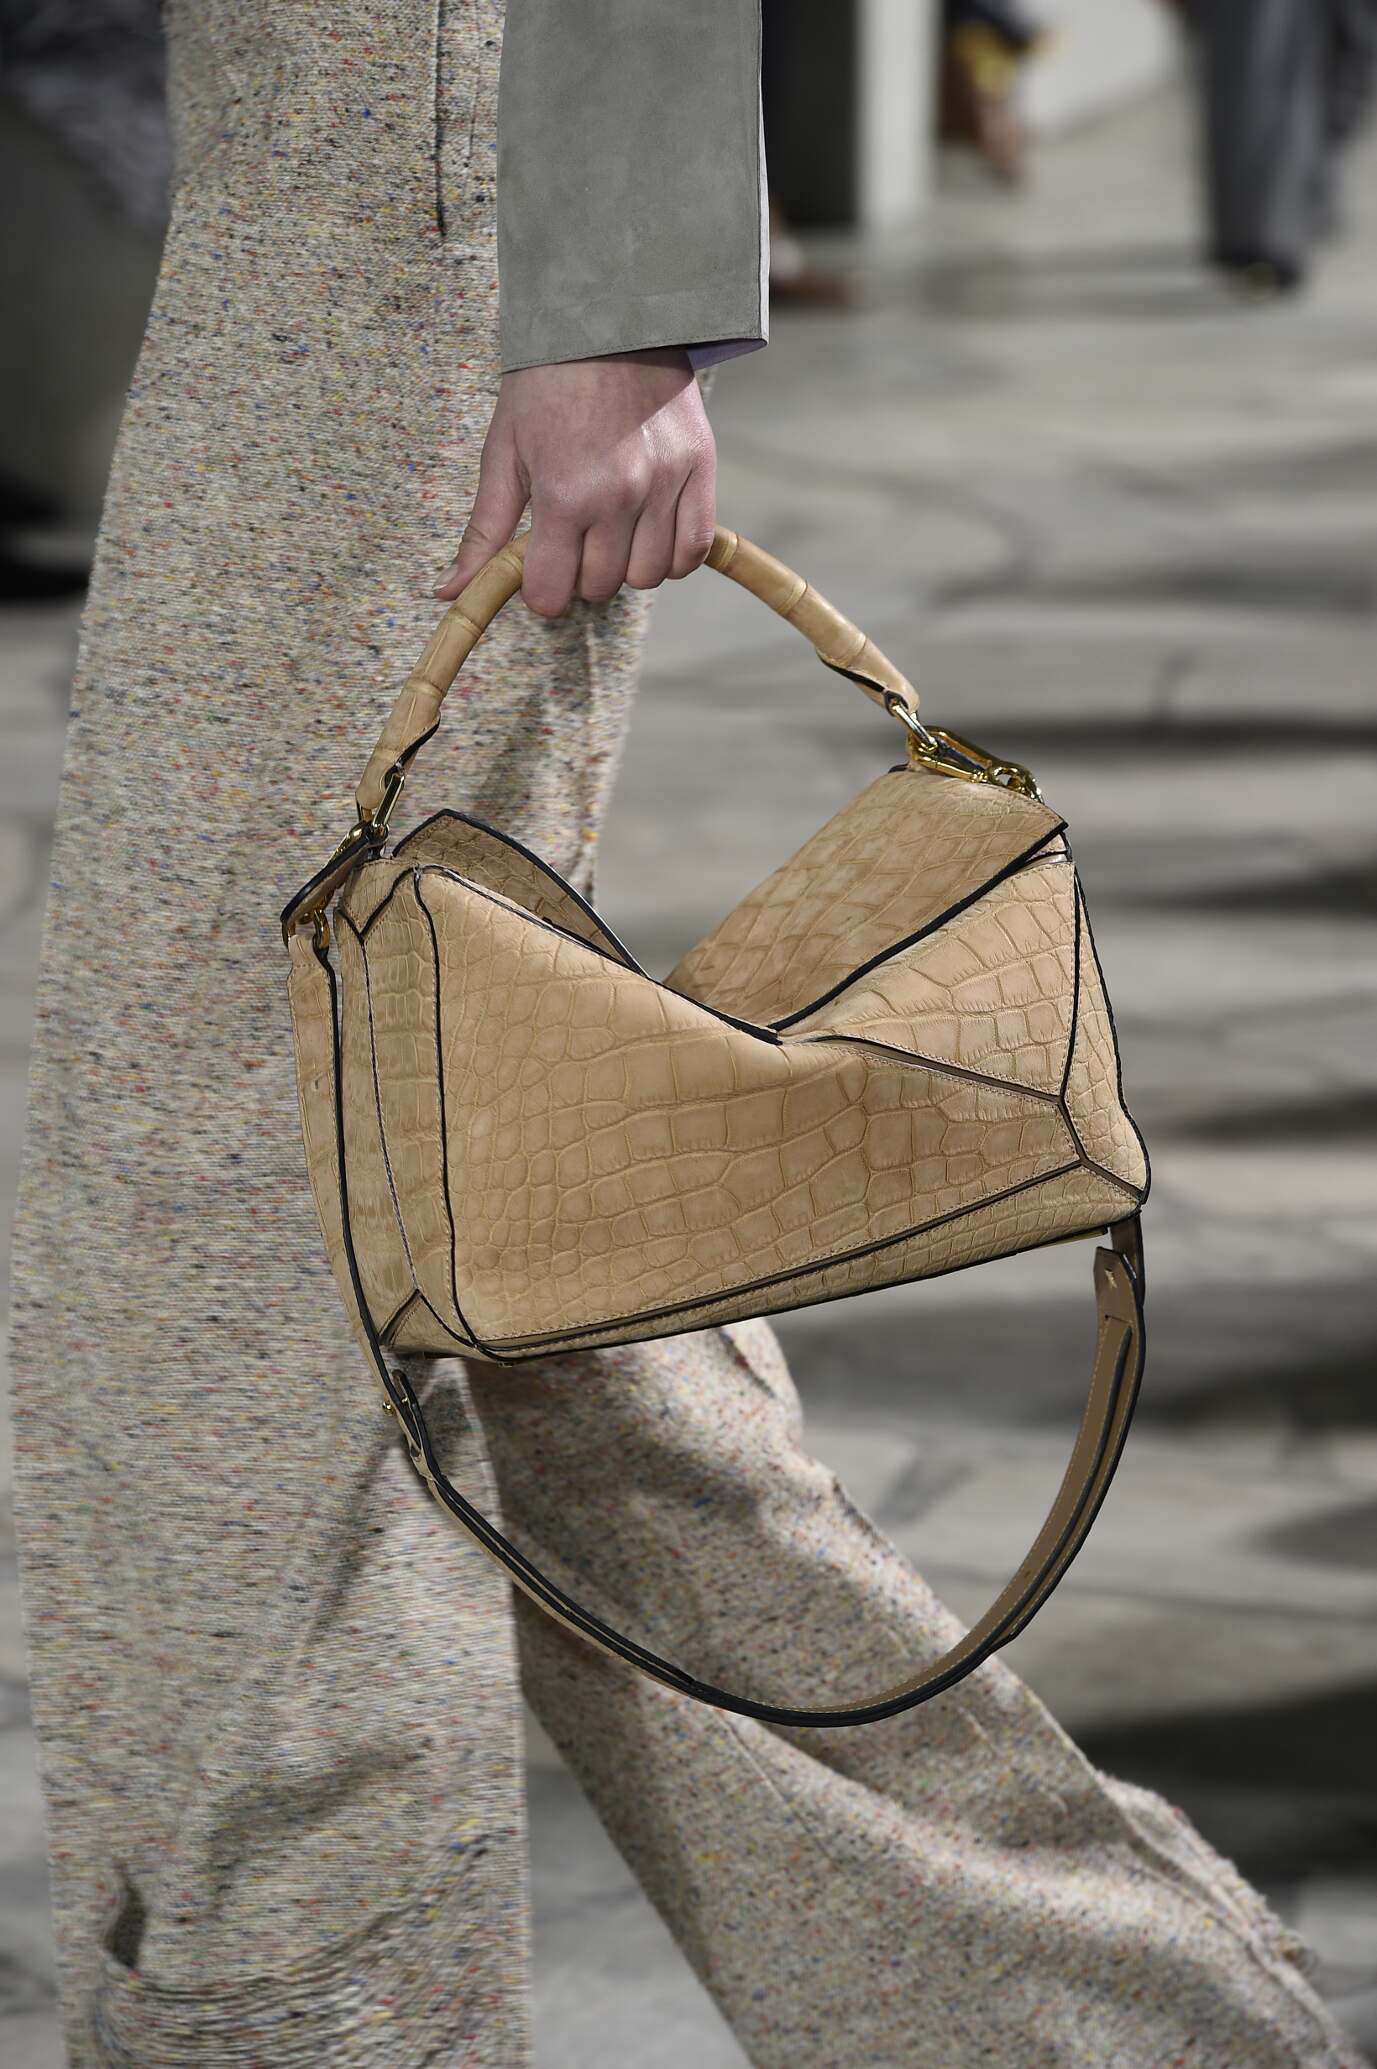 Fashion Show FW 2015 2016 Loewe Bag Detail Womenswear